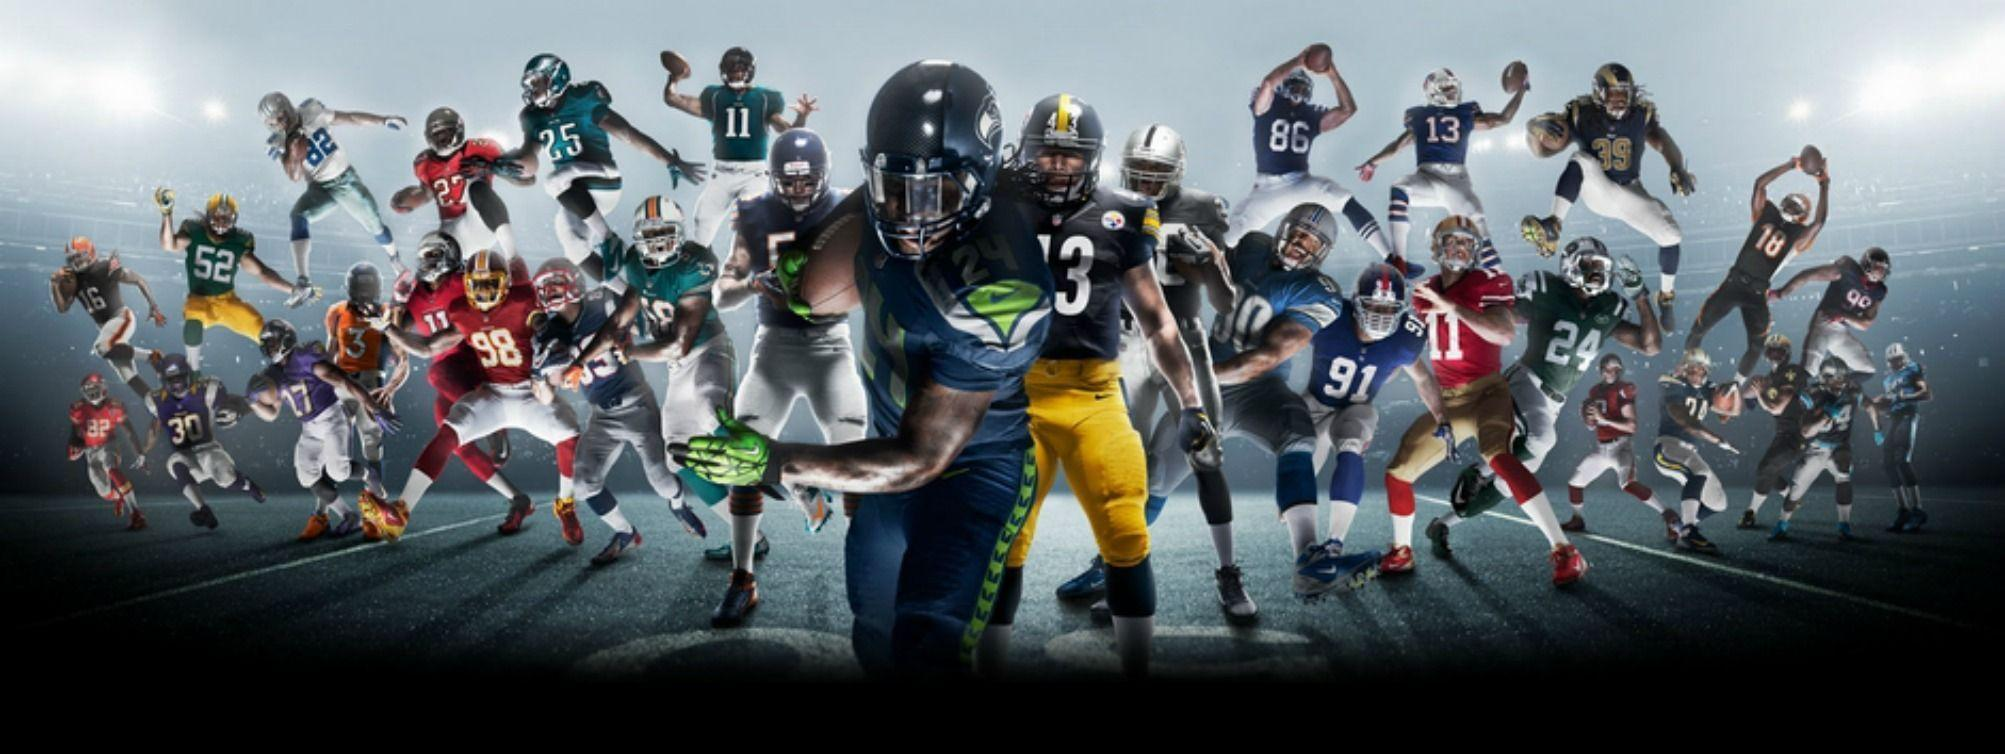 American Football Wallpapers Maker Pro: Cool NFL Football Wallpapers